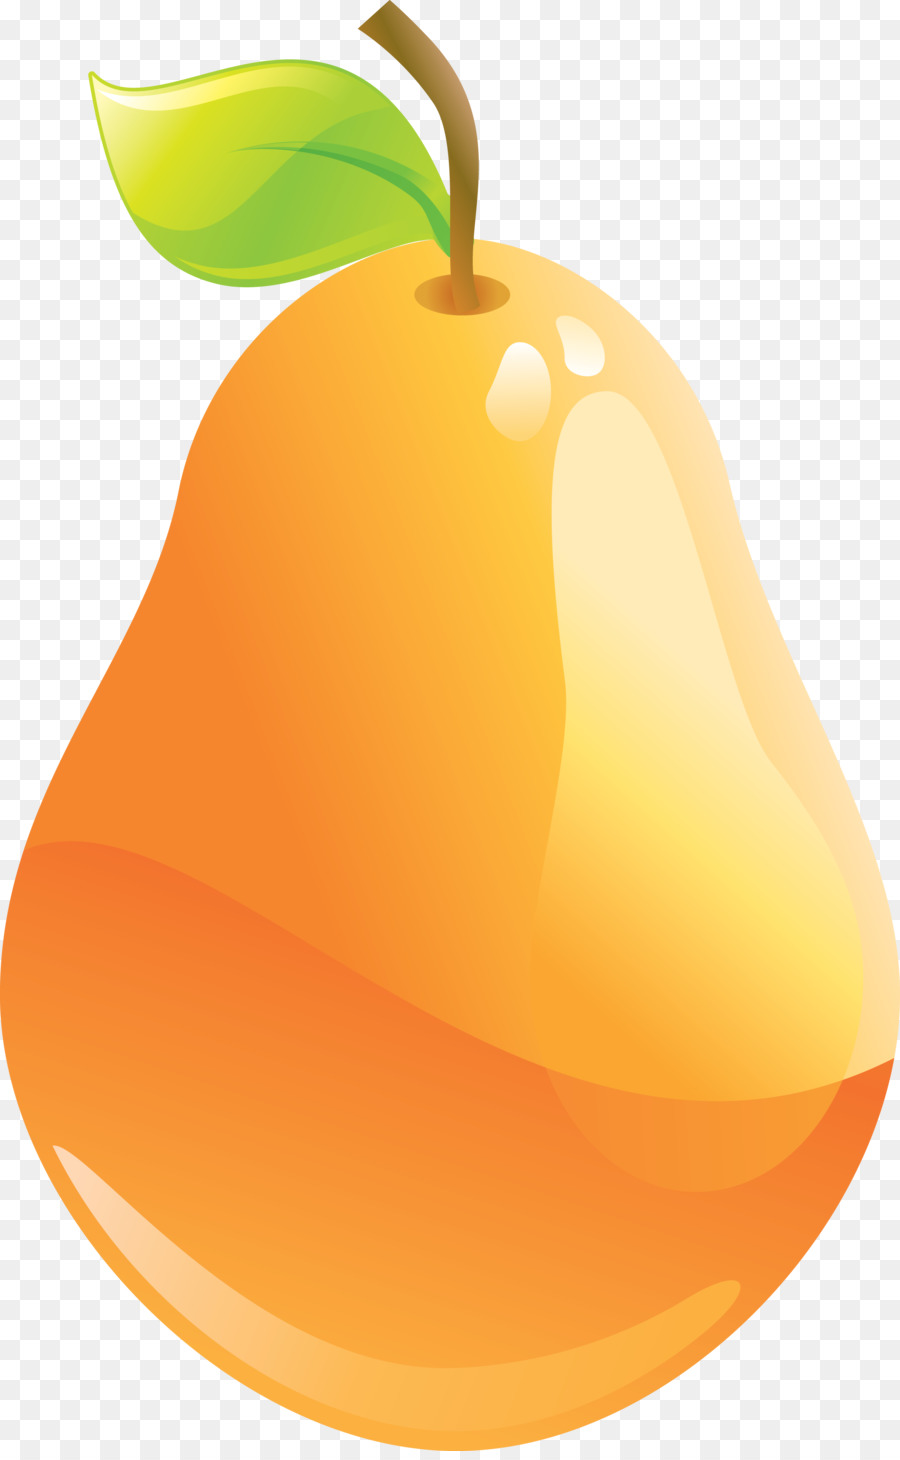 Pear clipart peach. Download png asian clip